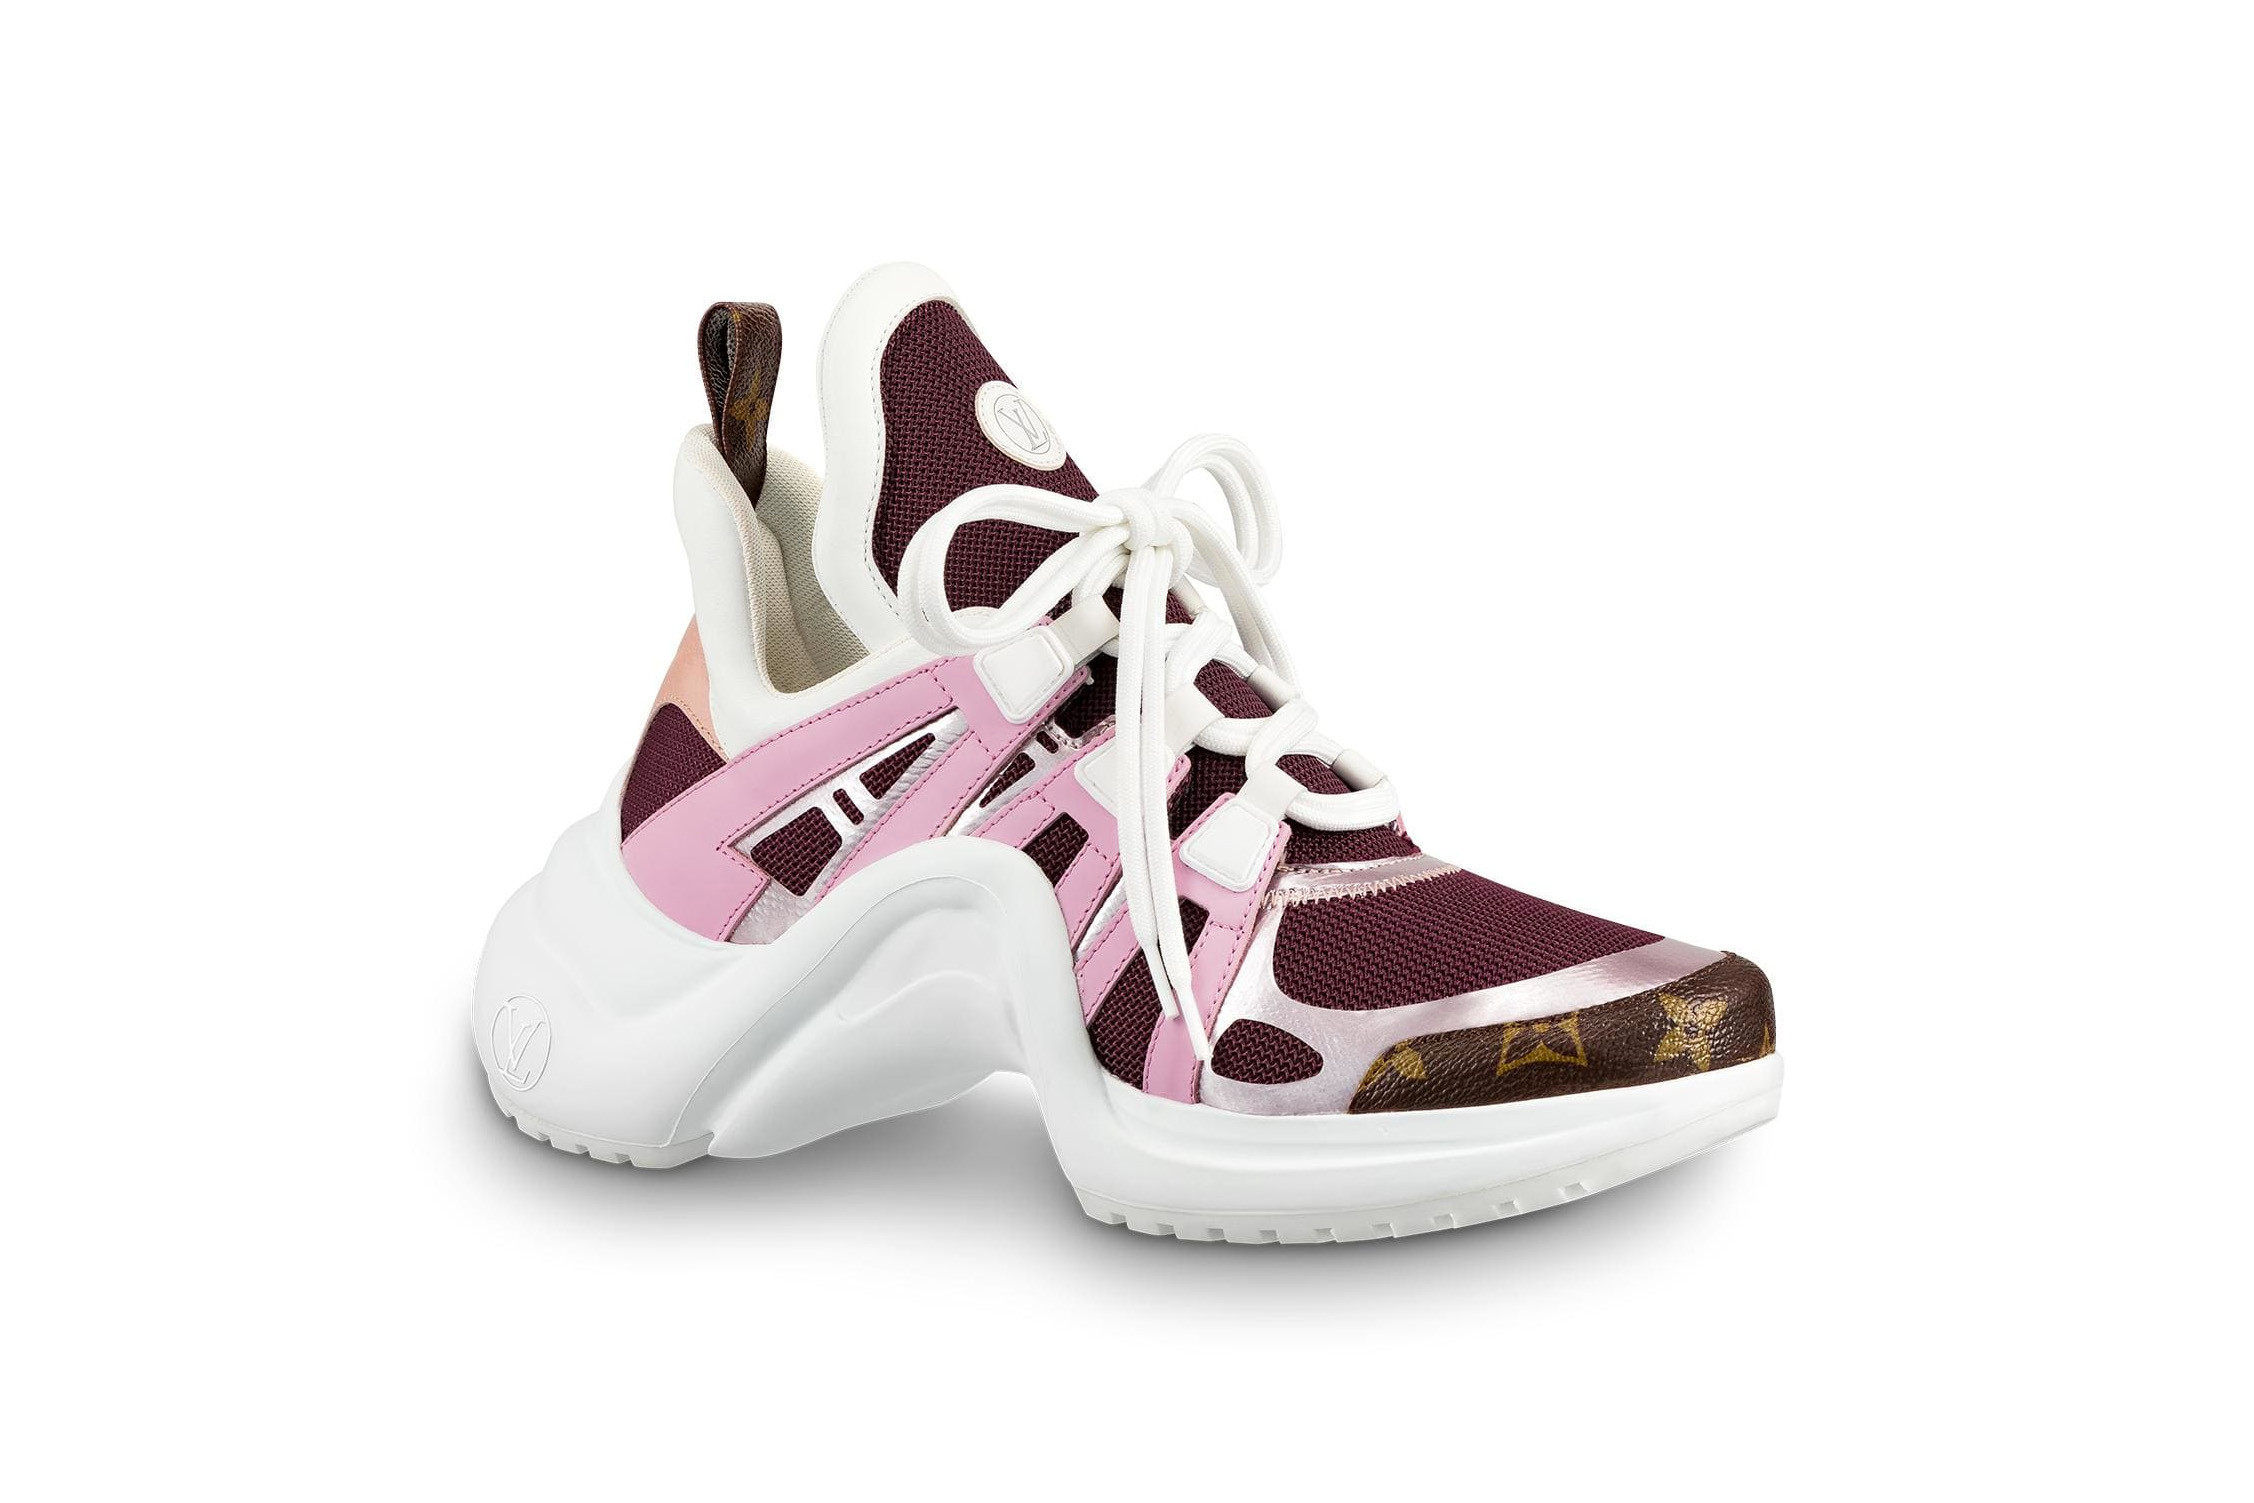 Louis Vuitton Archlight Sneakers in